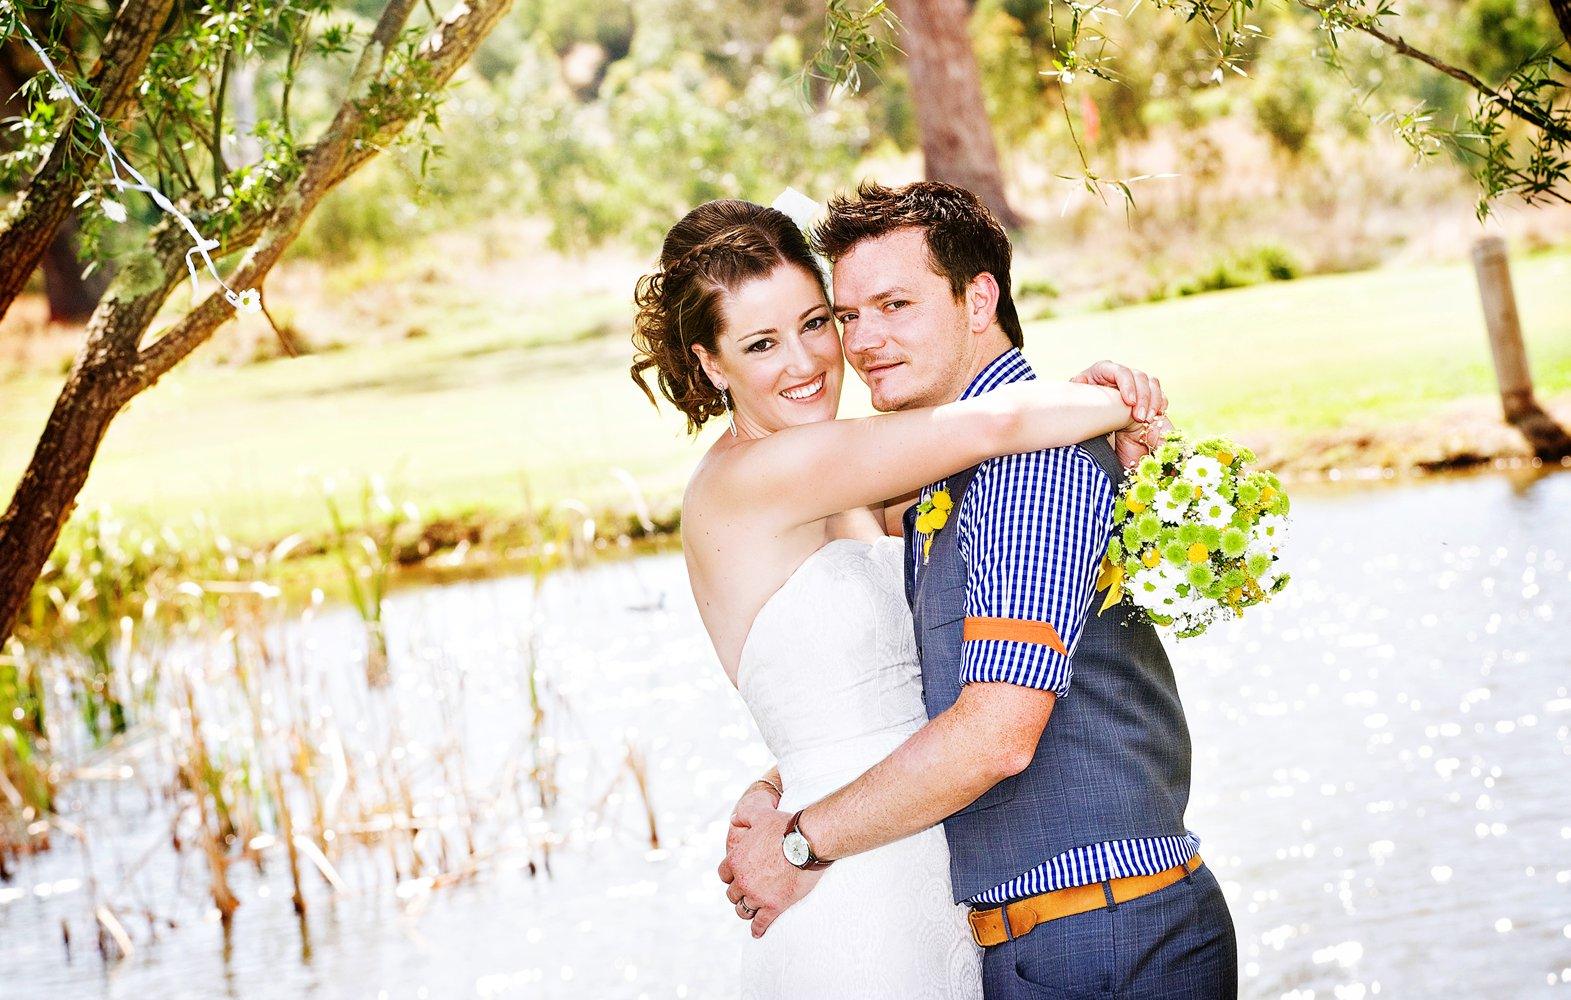 professional wedding albums in Perth online